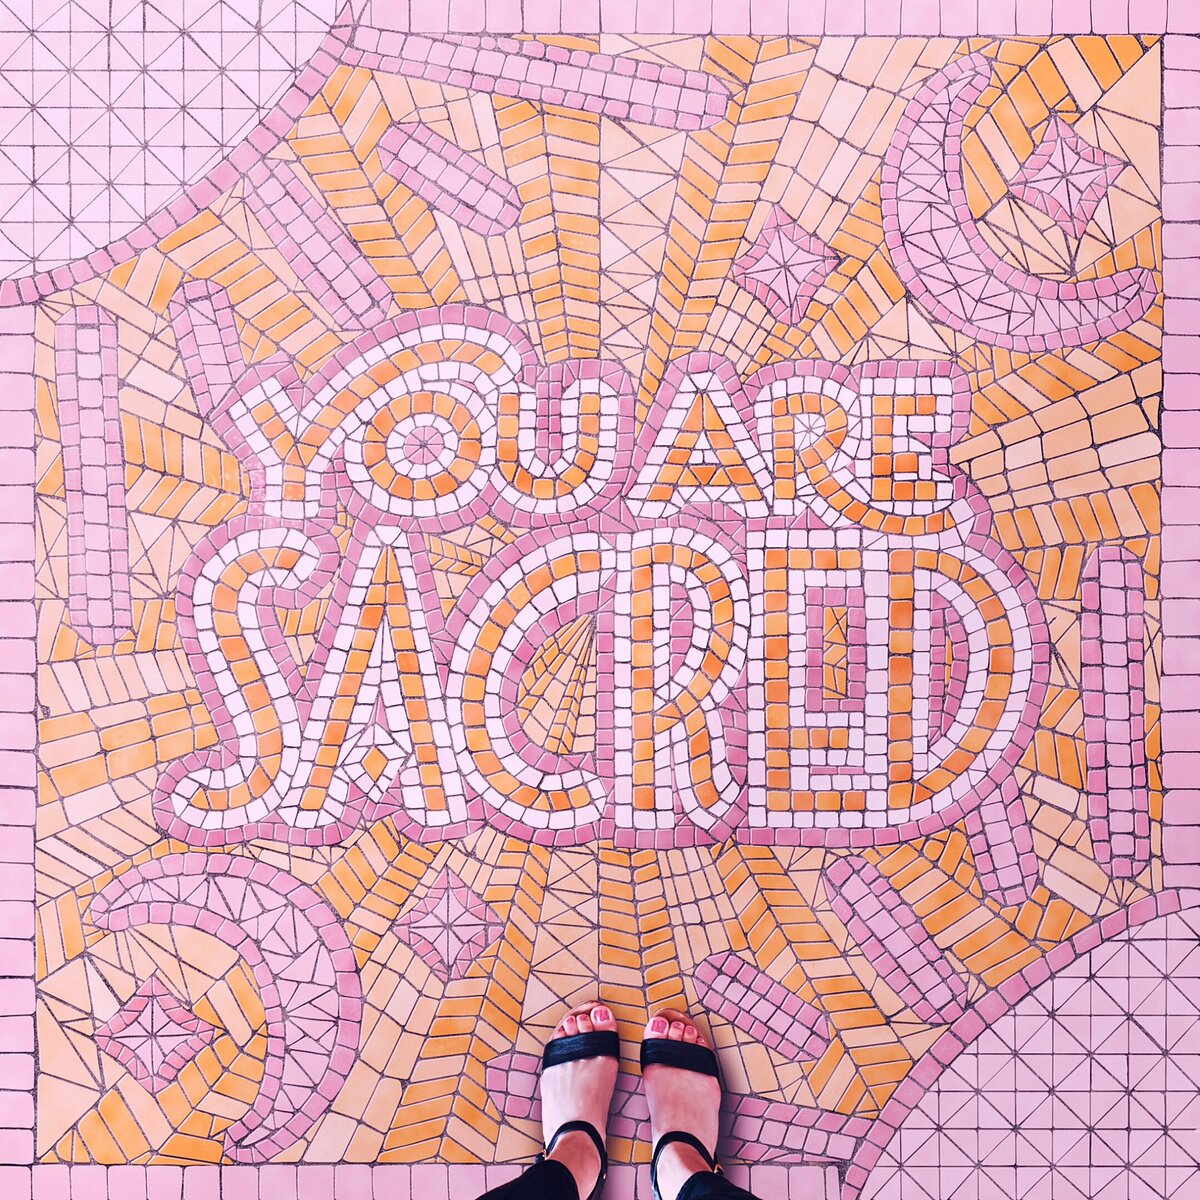 YouAreSacredbySarahScriptFeetVersion